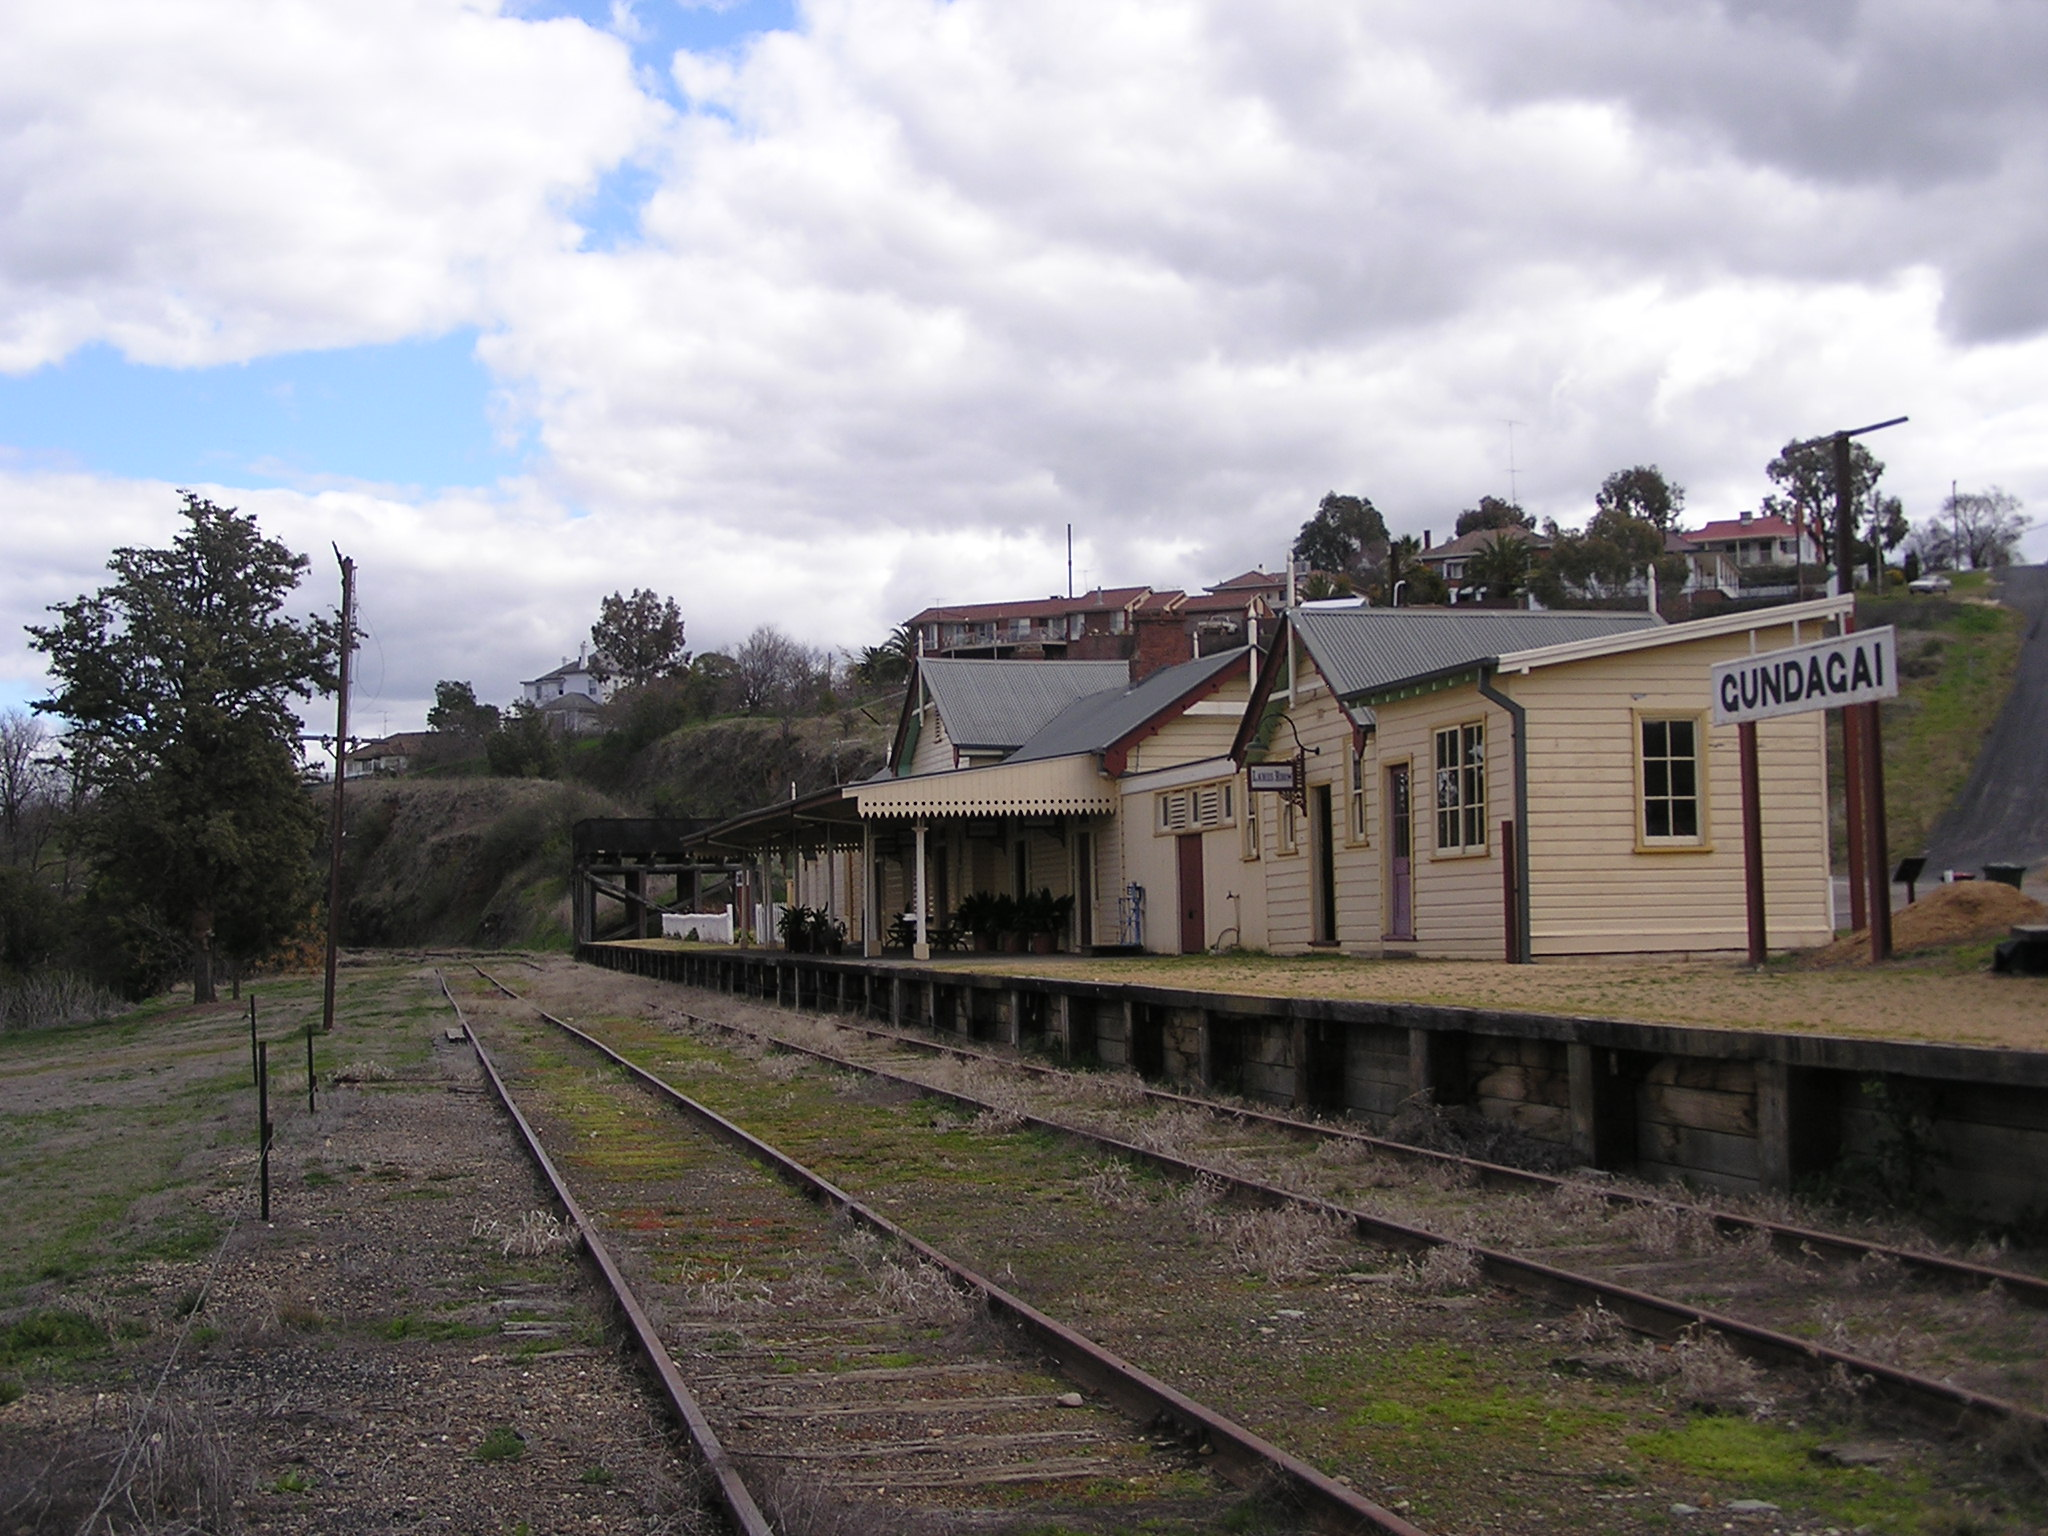 Gundagai Australia  city images : Gundagai railway station 2006 Wikipedia, the free ...